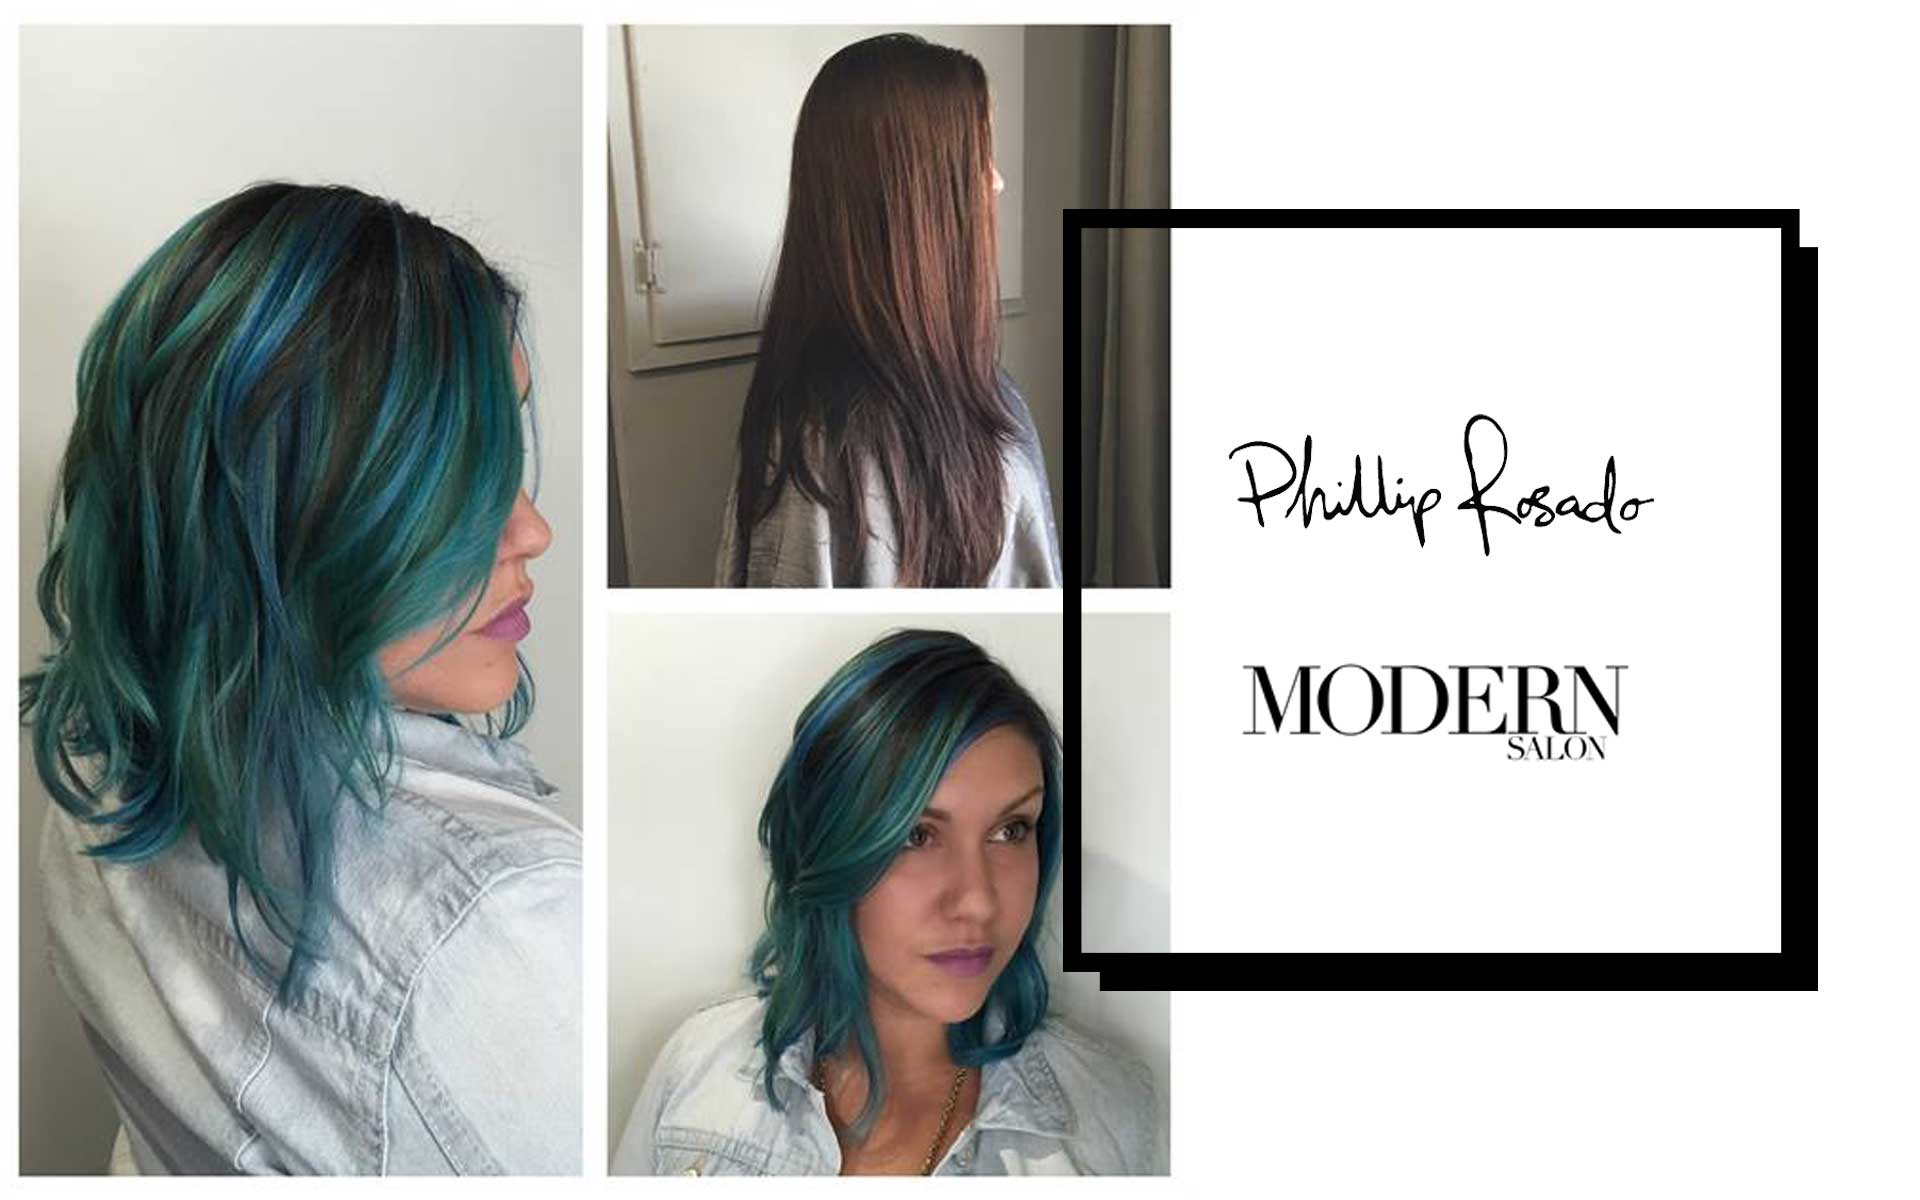 PHILLIP ROSADO WITH MODERN SALON ON HOW TO CUT AND BLUE GREEN COLOR